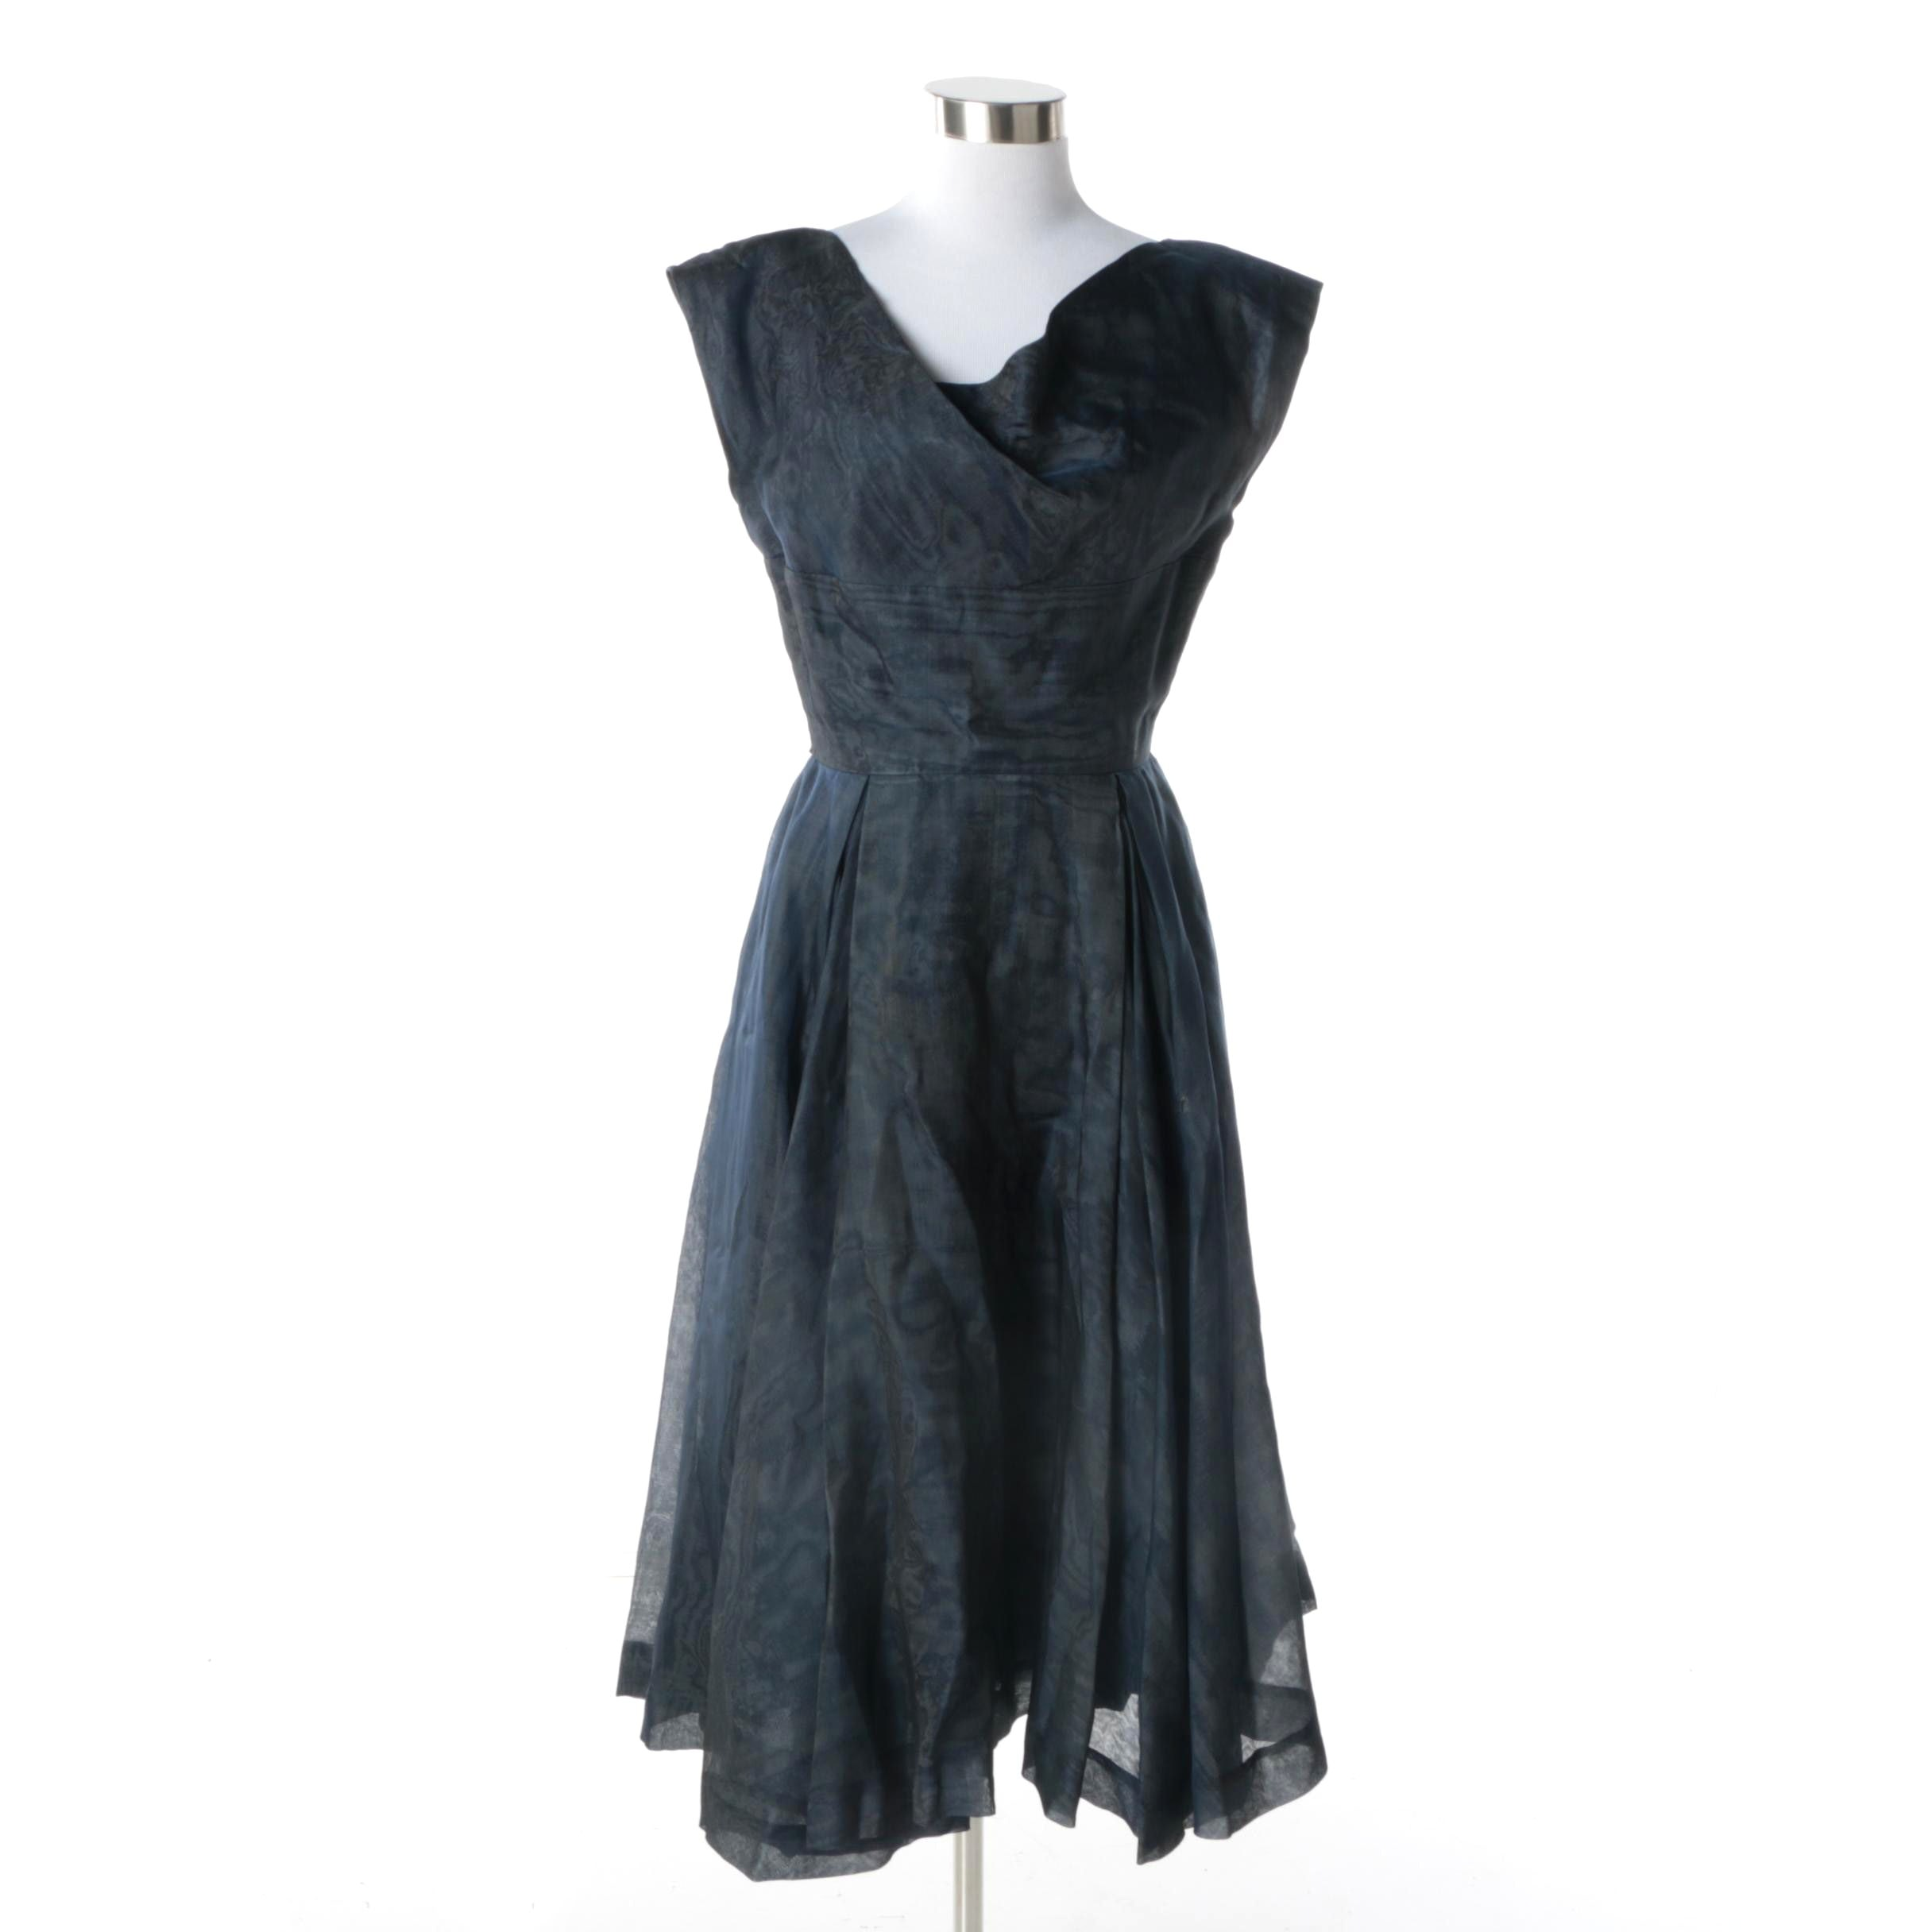 1950s Vintage Henri Bendel of New York Navy Cocktail Dress with Drape Neck